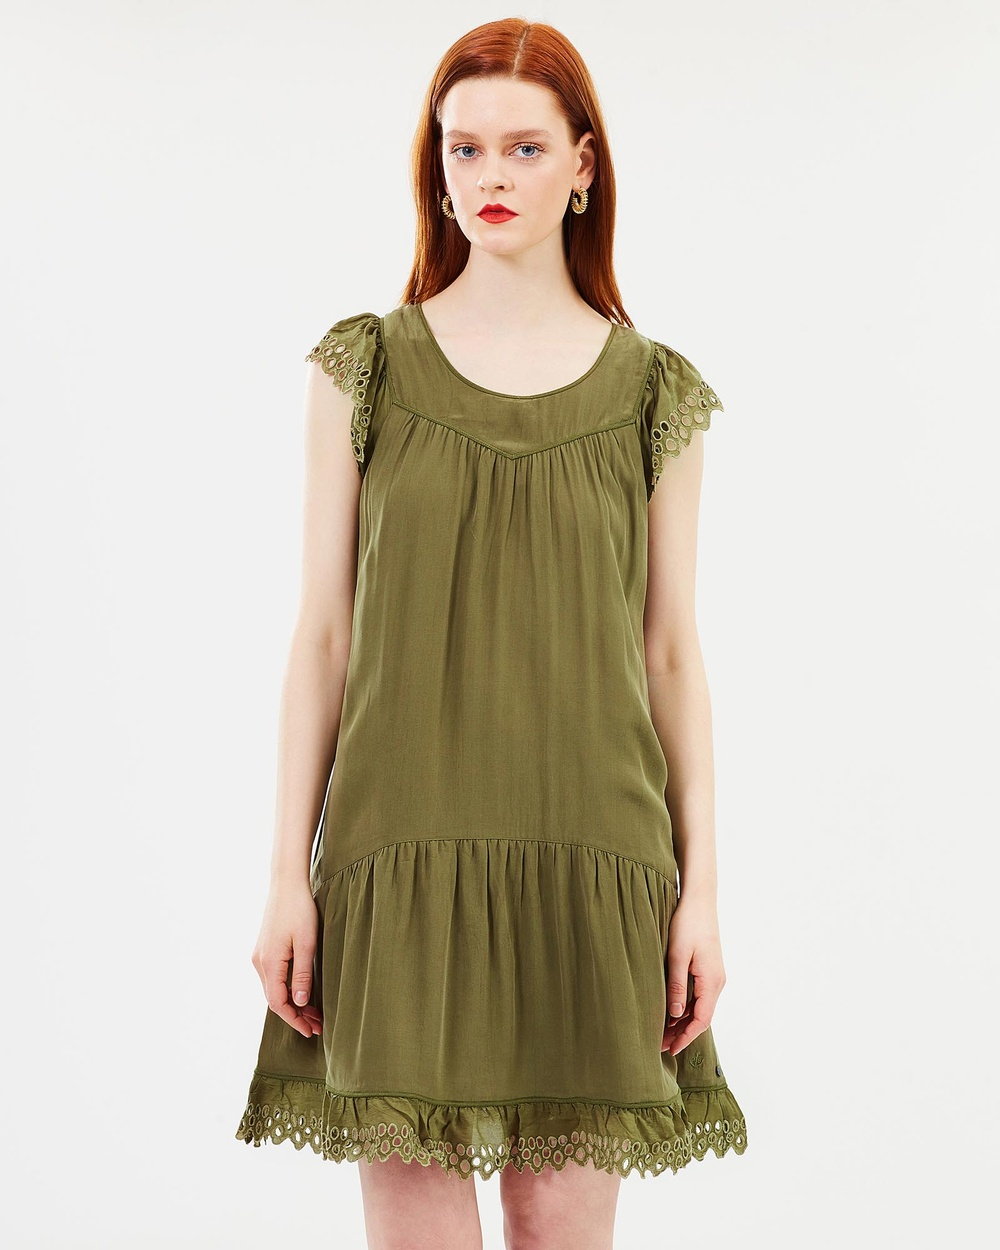 Maison Scotch Draped Broderie Dress Dresses Military Green Draped Broderie Dress